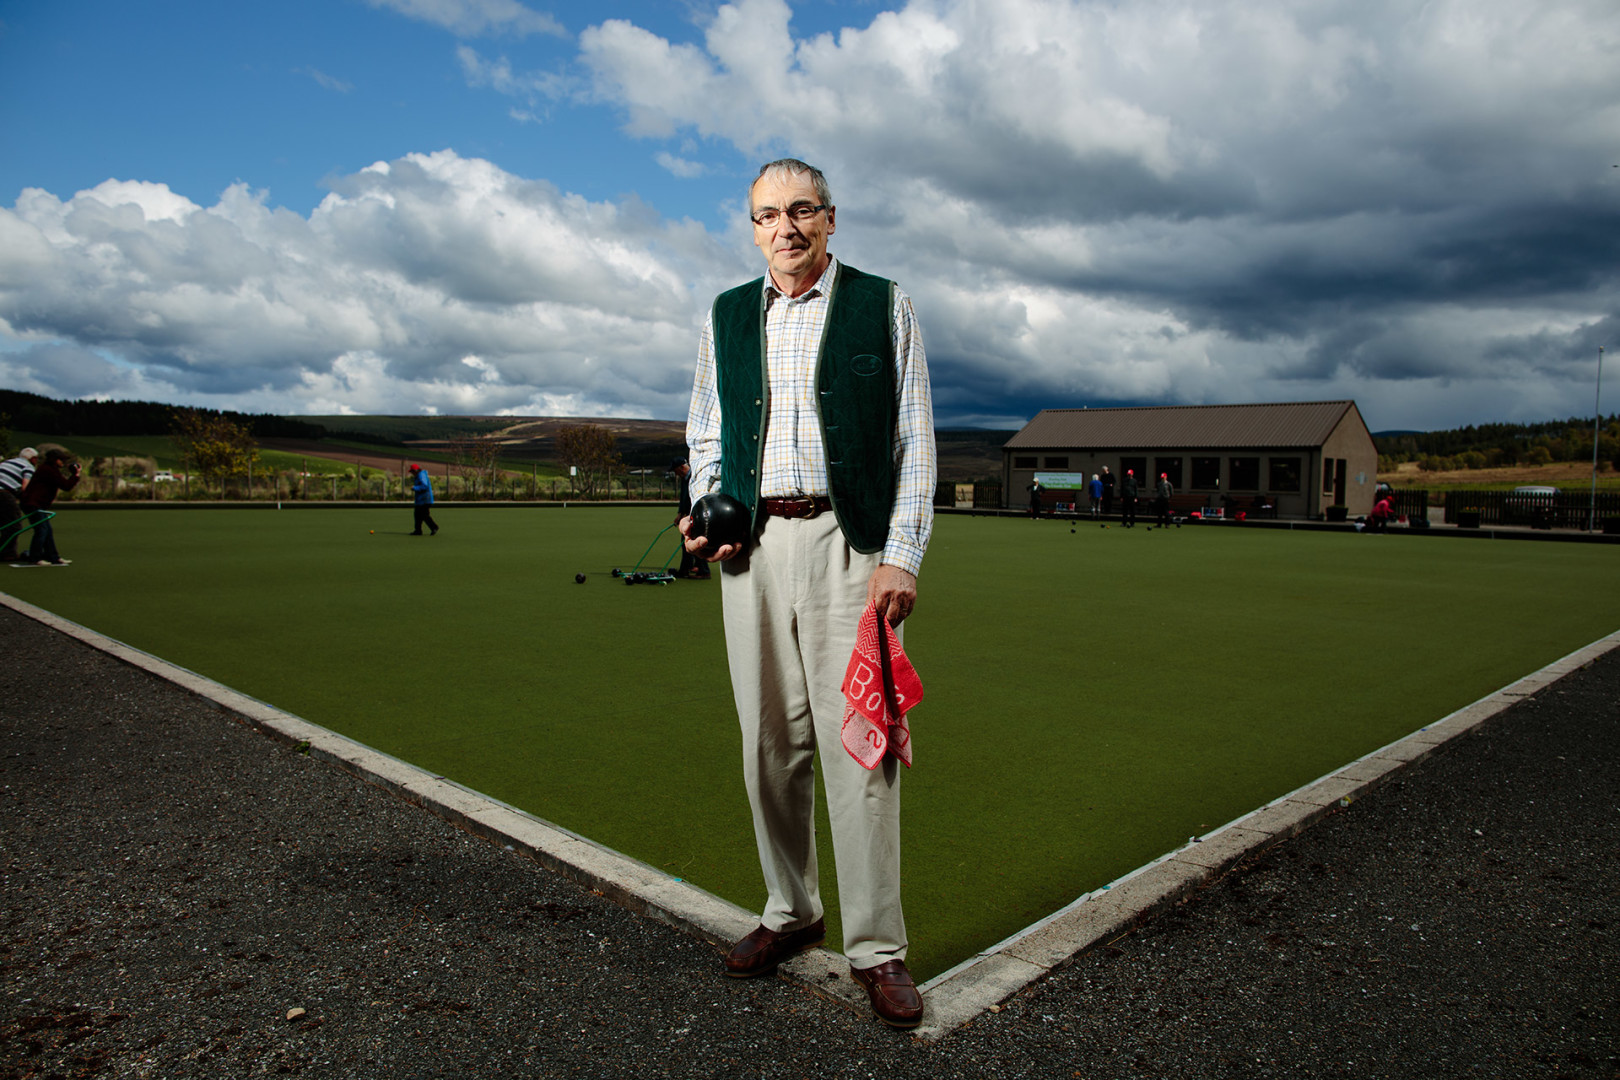 Chairman of the Tomintoul & Glenlivet Outdoor Bowling Club, Moray.